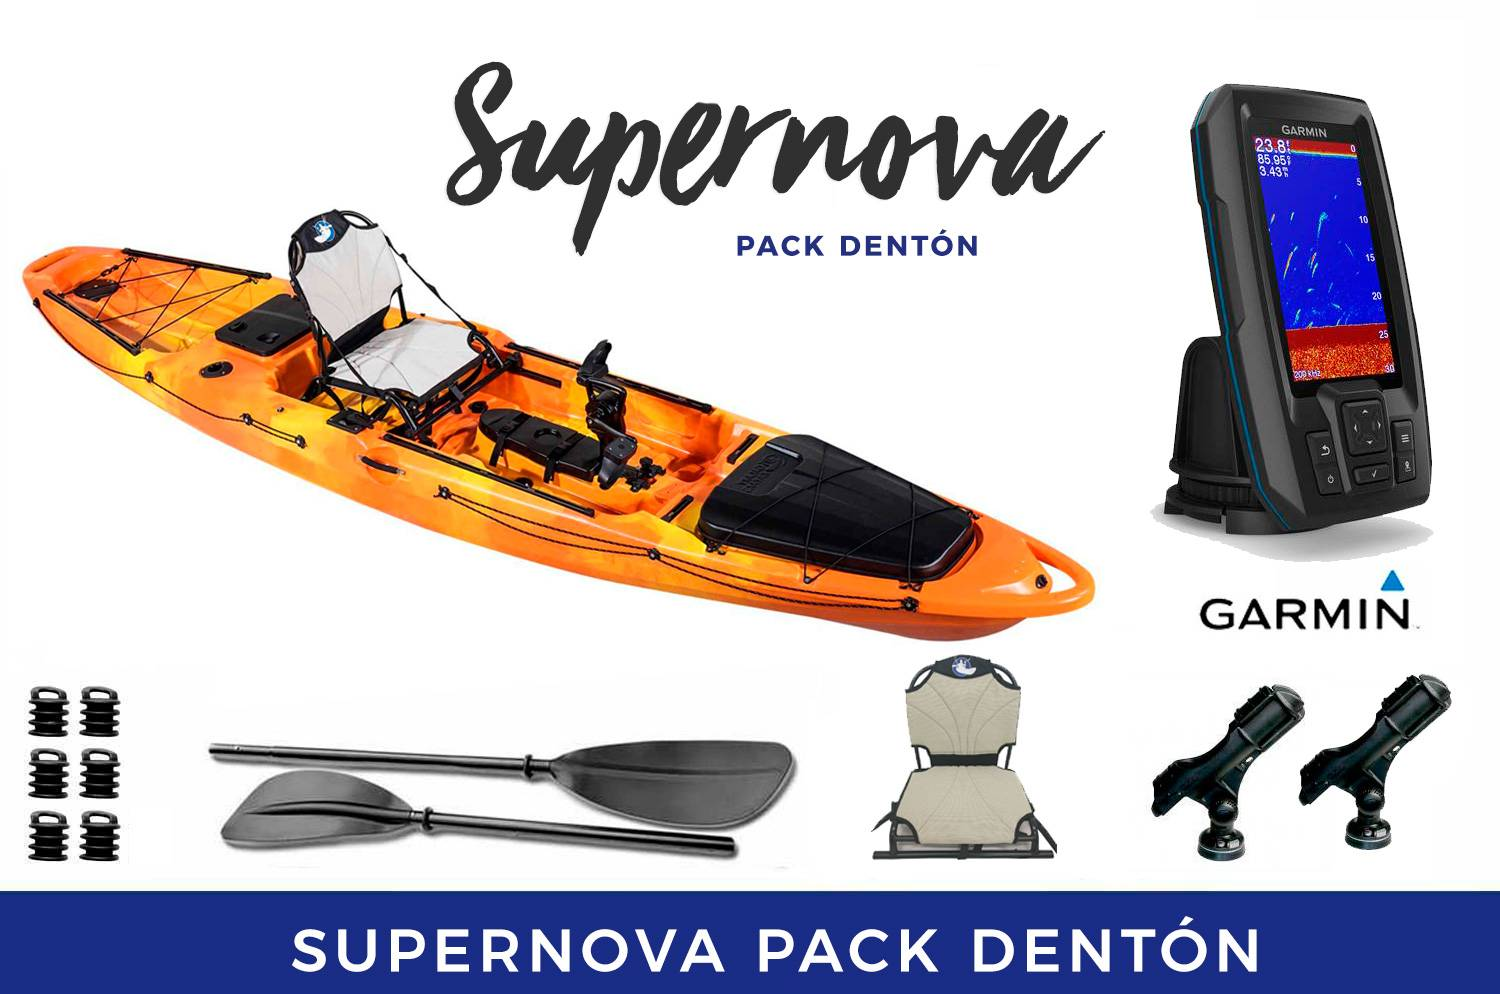 Supernova Pack Dentón